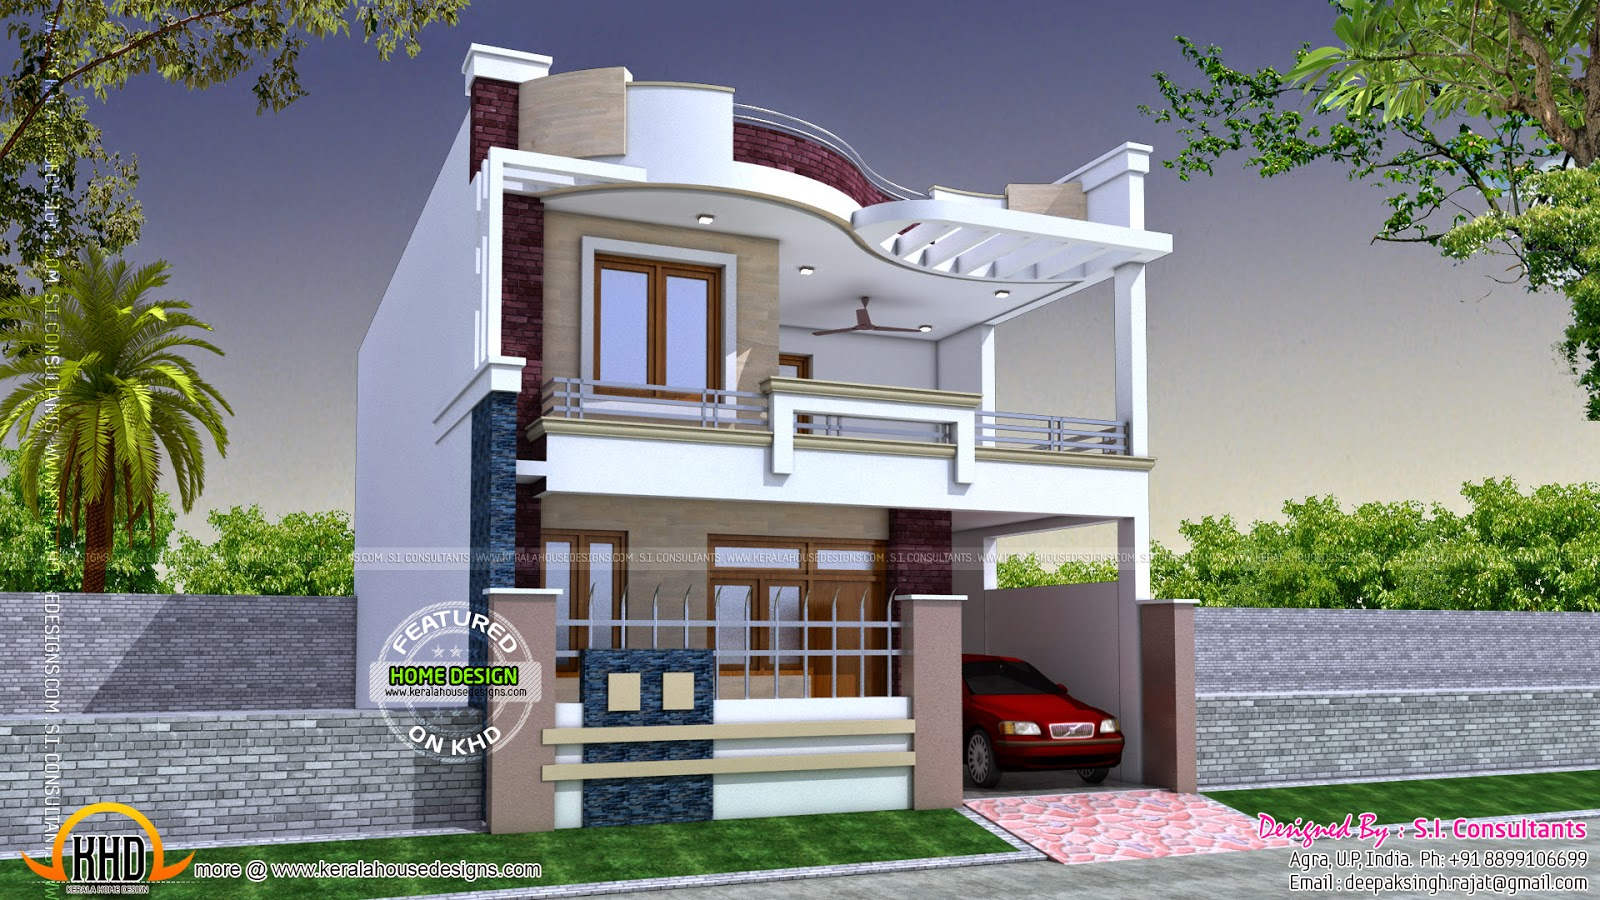 Modern indian home design kerala home design and floor plans for Ground floor house design